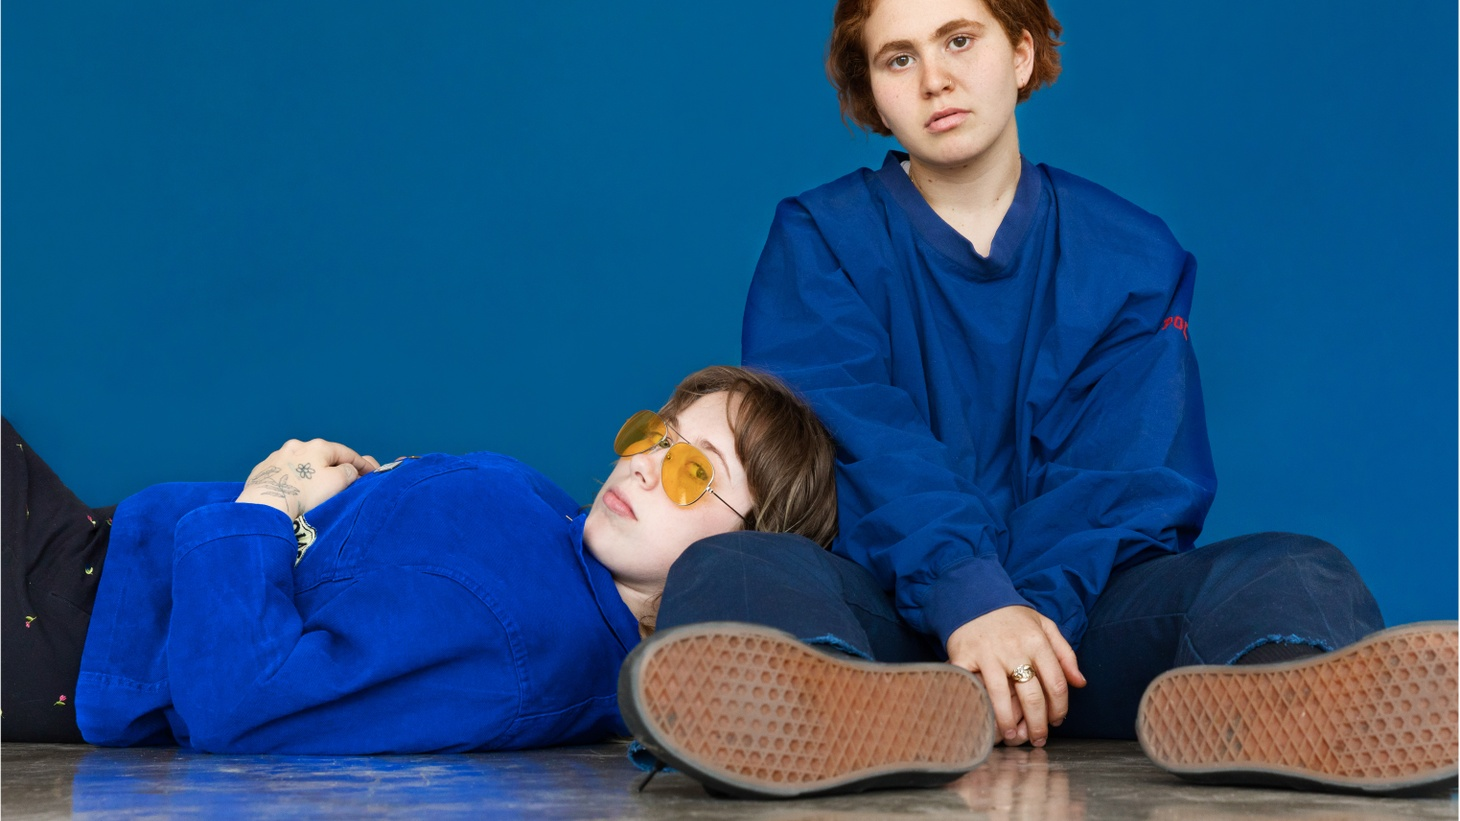 The sophomore album by Girlpool finds the band adding a drummer. The duo, comprised of singers/guitarists Harmony Tividad and Cleo Tucker, felt that percussion would help them explore a new dimension in their musical dynamic.